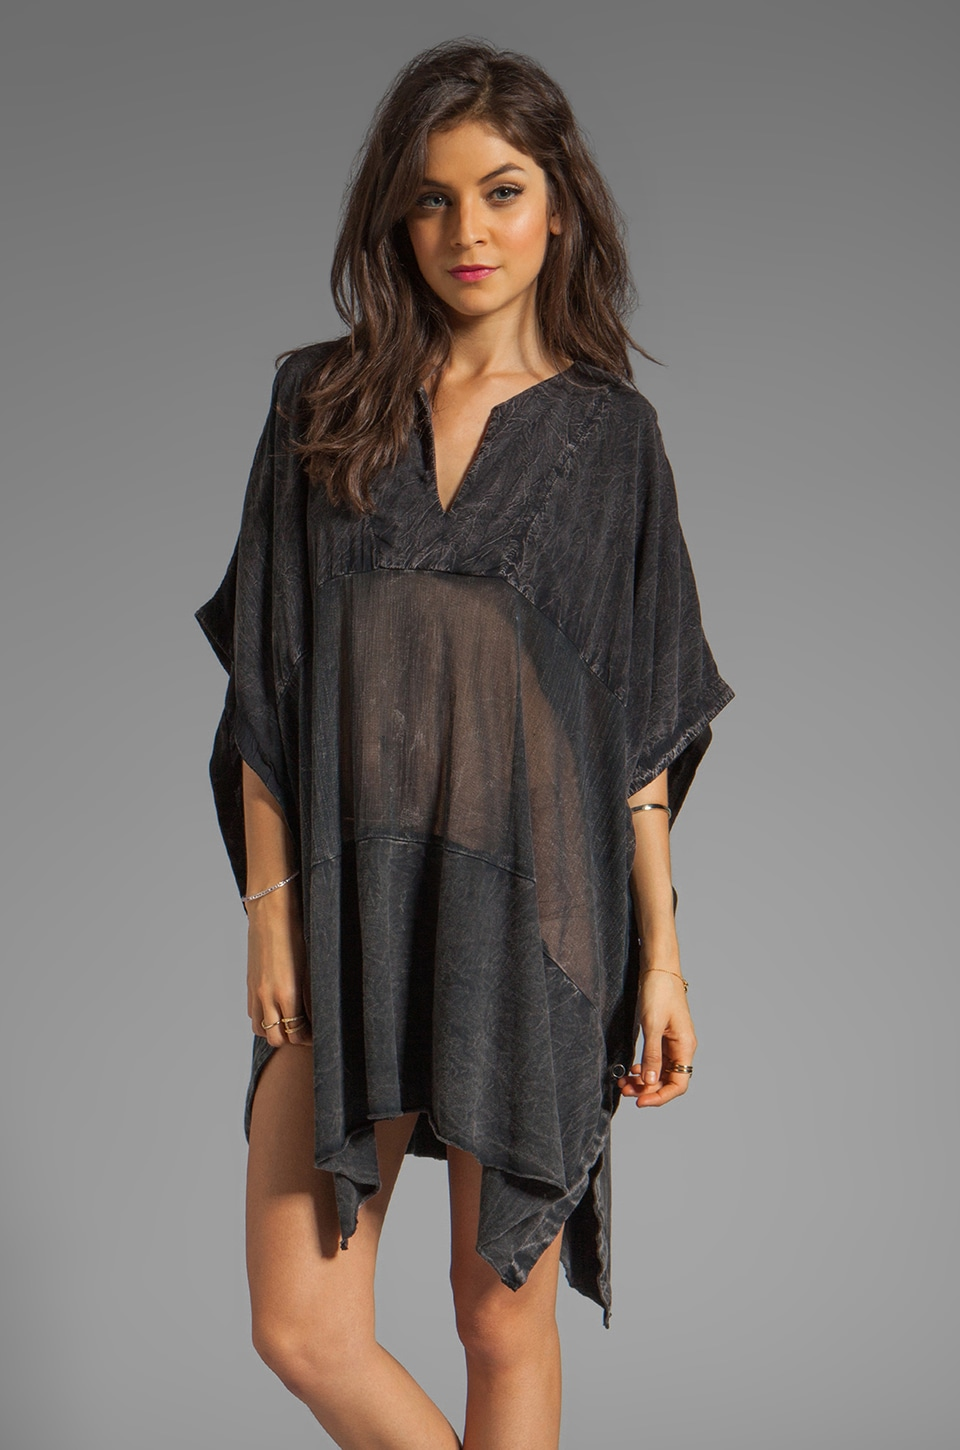 Rebel Yell June Kaftan in Black